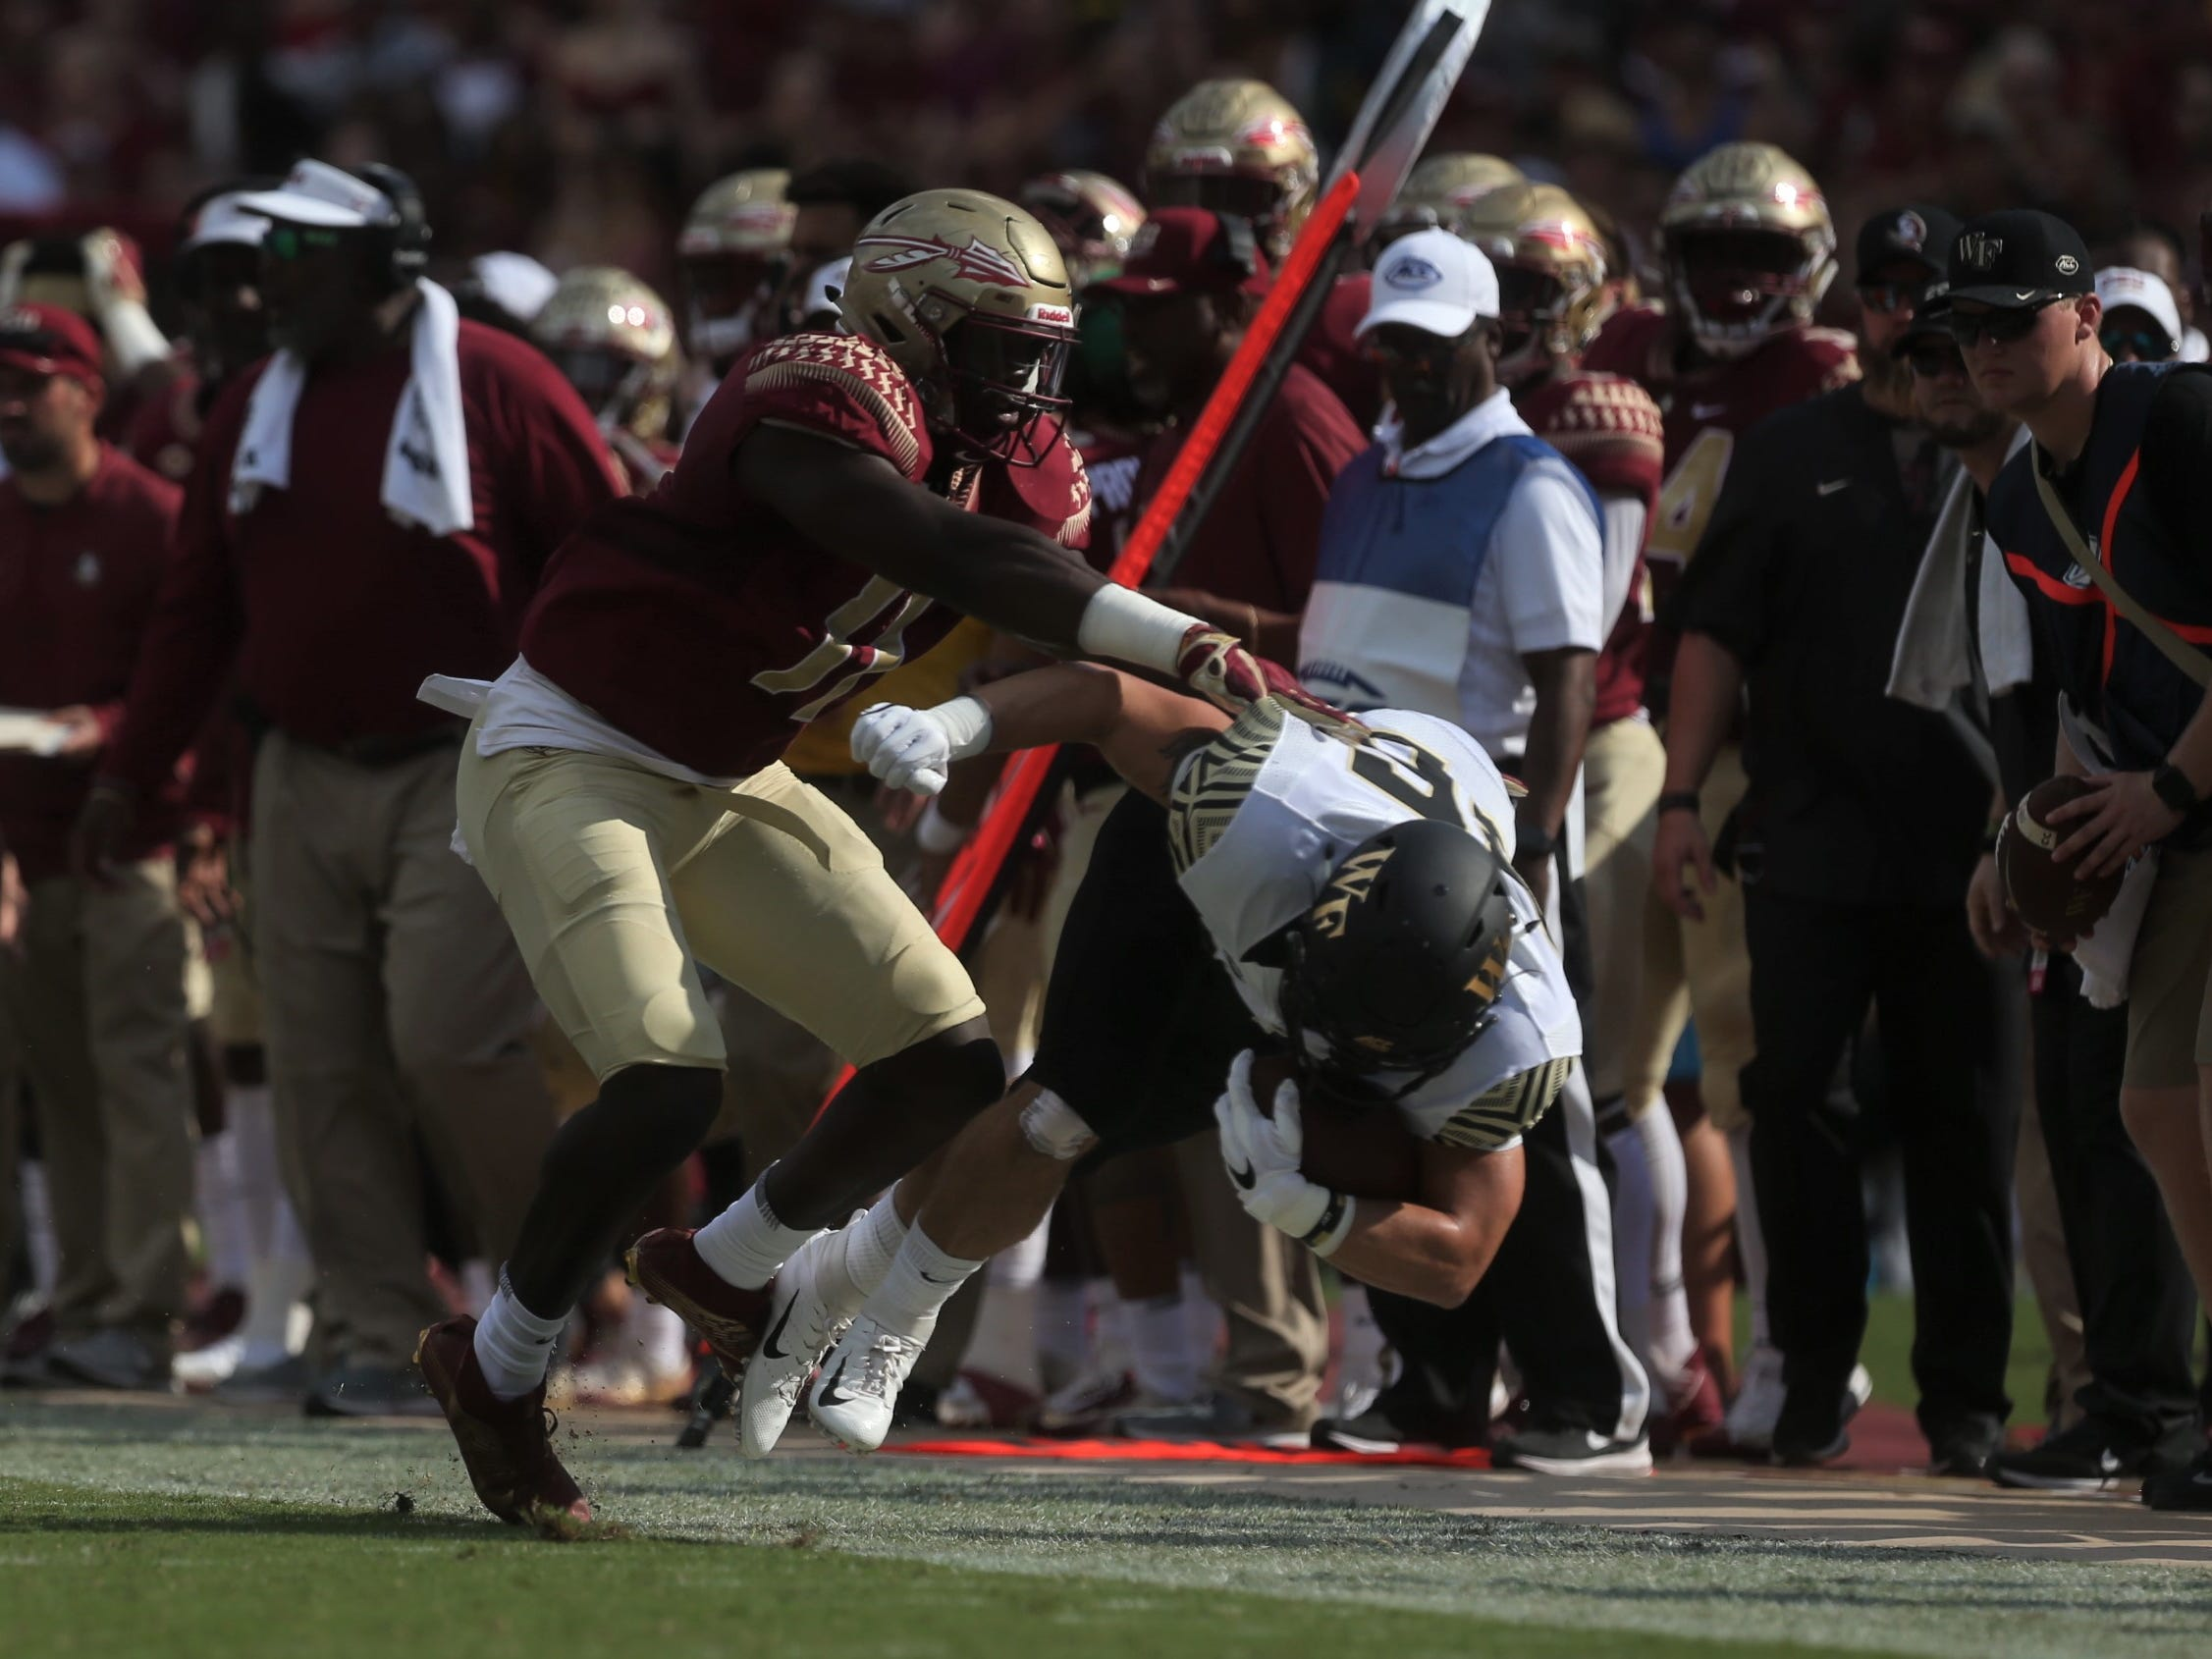 Florida State defensive ned Janarius Robinson chases down Wake Forest running back Cade Carney and pushes him out of bounds during a game at Doak Campbell Stadium on Saturday, Oct. 20, 2018.